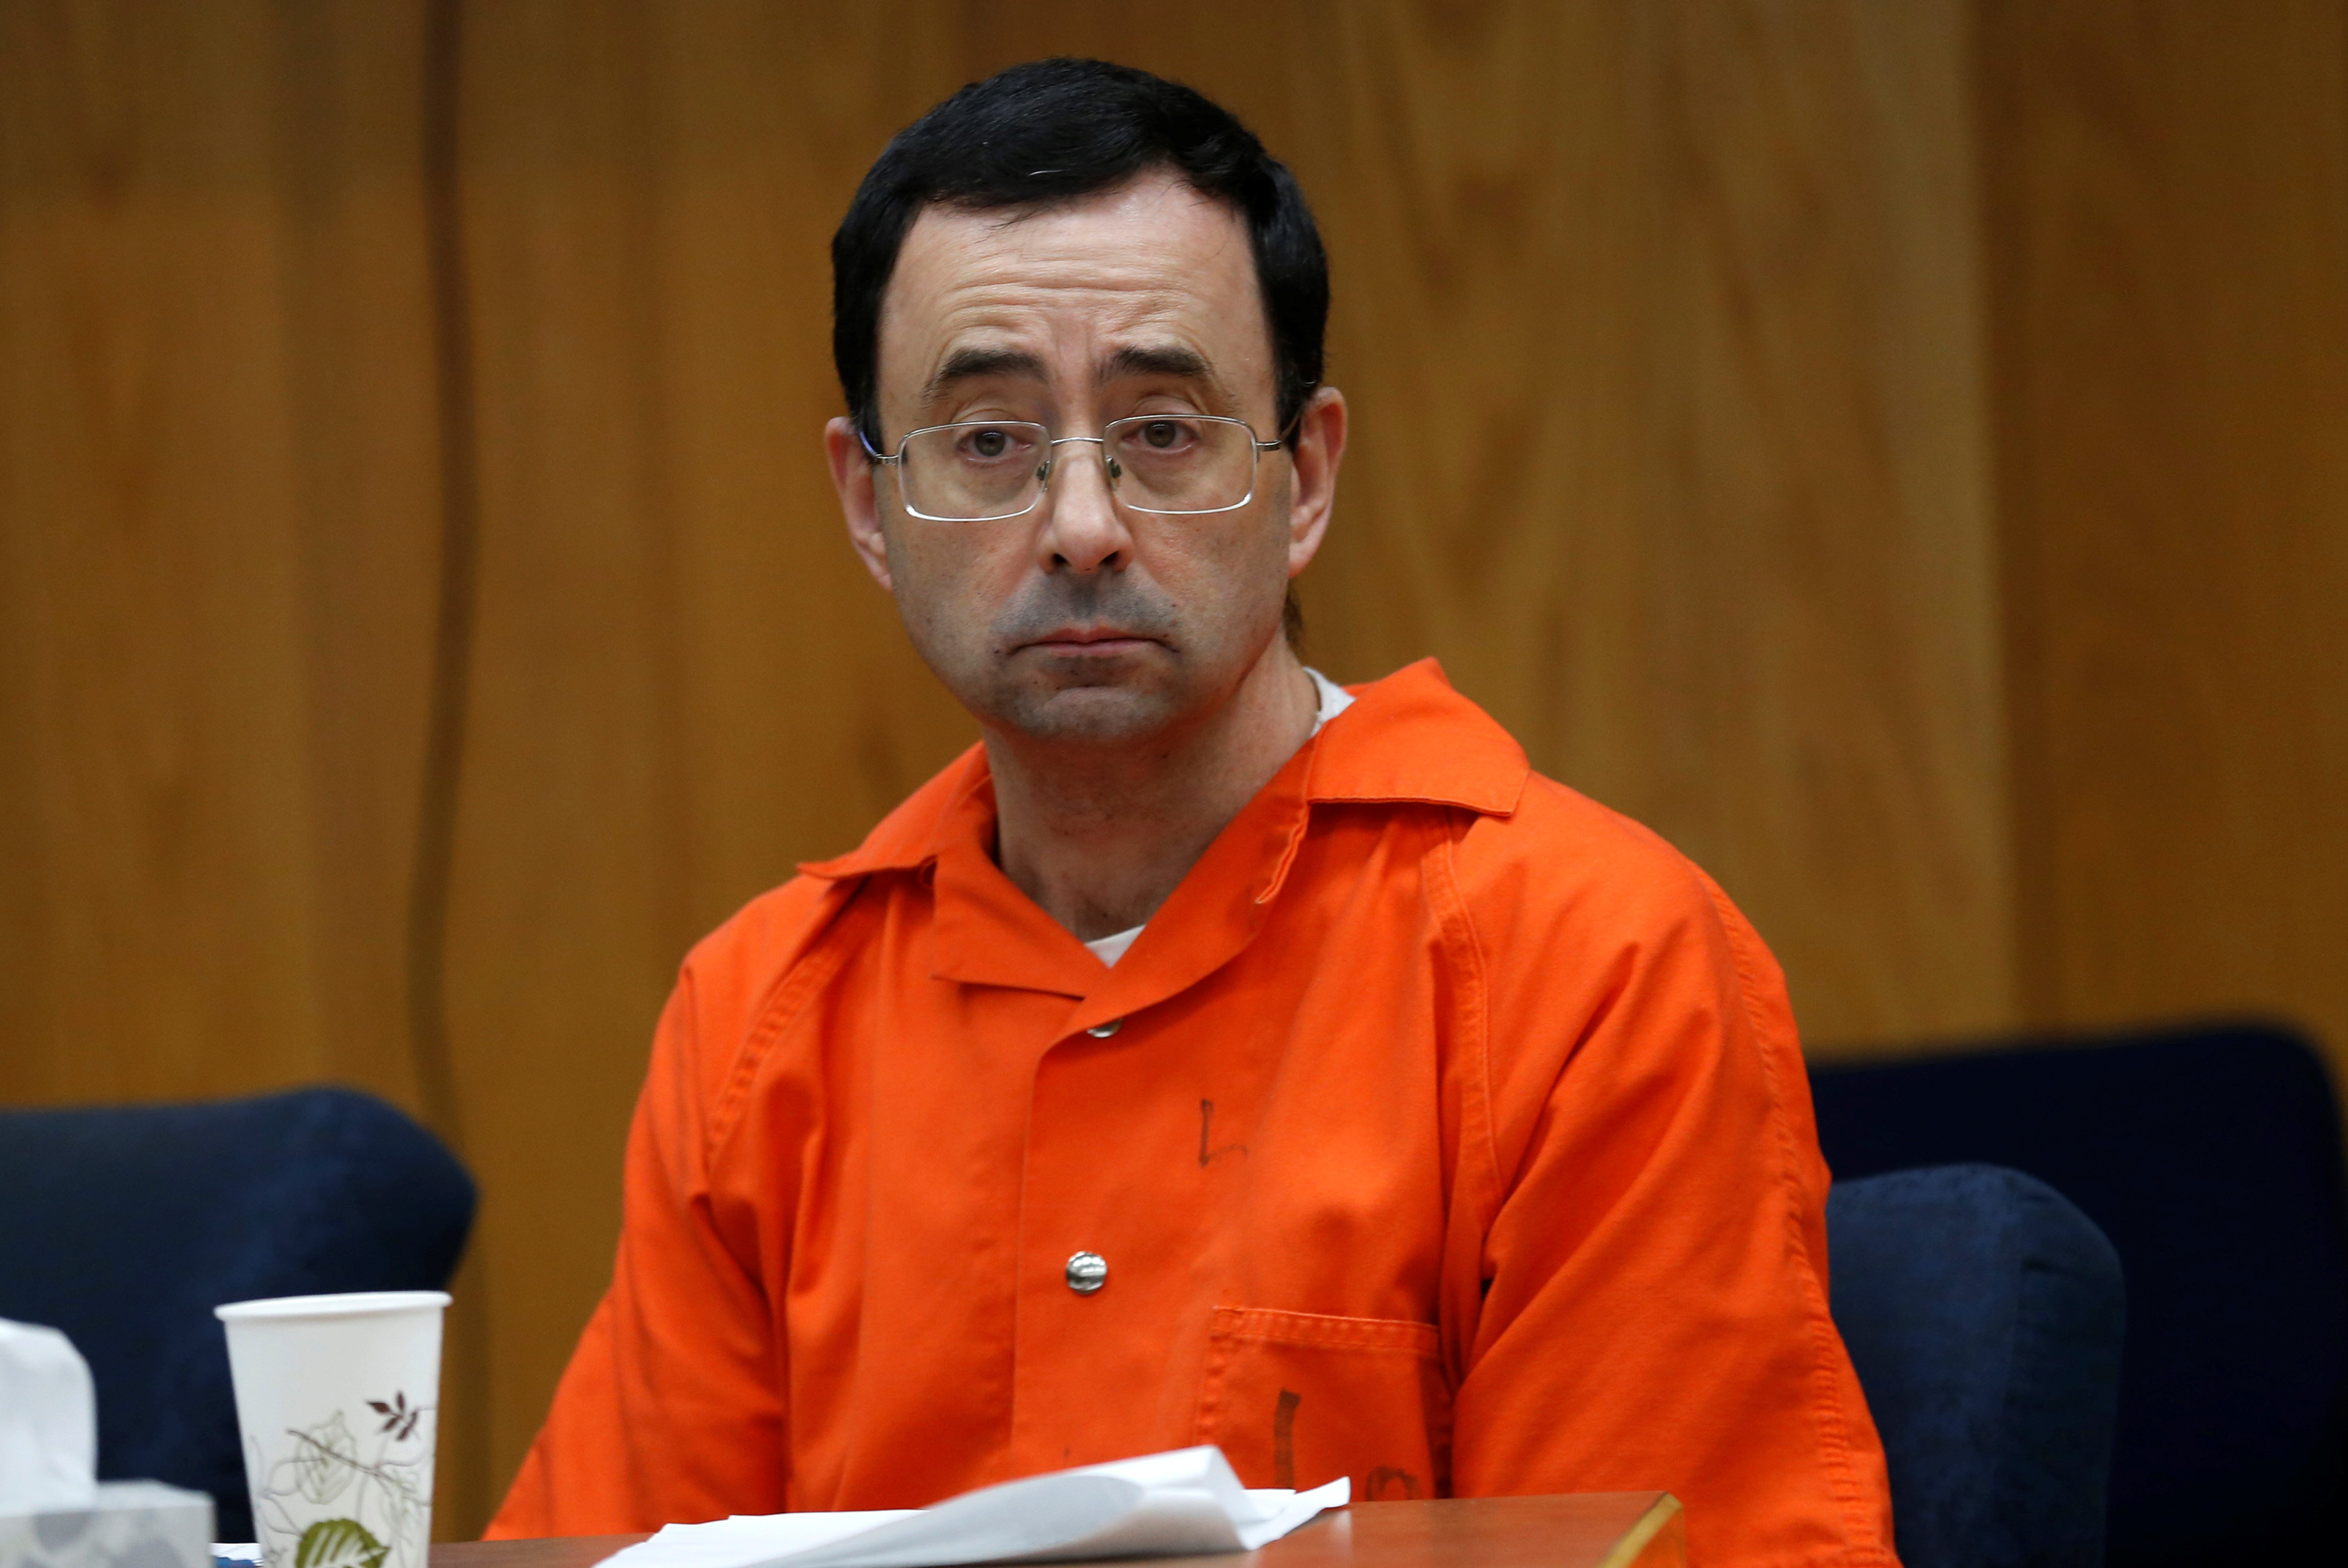 Larry Nassar, a former team USA Gymnastics doctor who pleaded guilty in November 2017 to sexual assault, listens to victims impact statements during his sentencing in the Eaton County Circuit Court in Charlotte, Michigan, U.S., January 31, 2018.